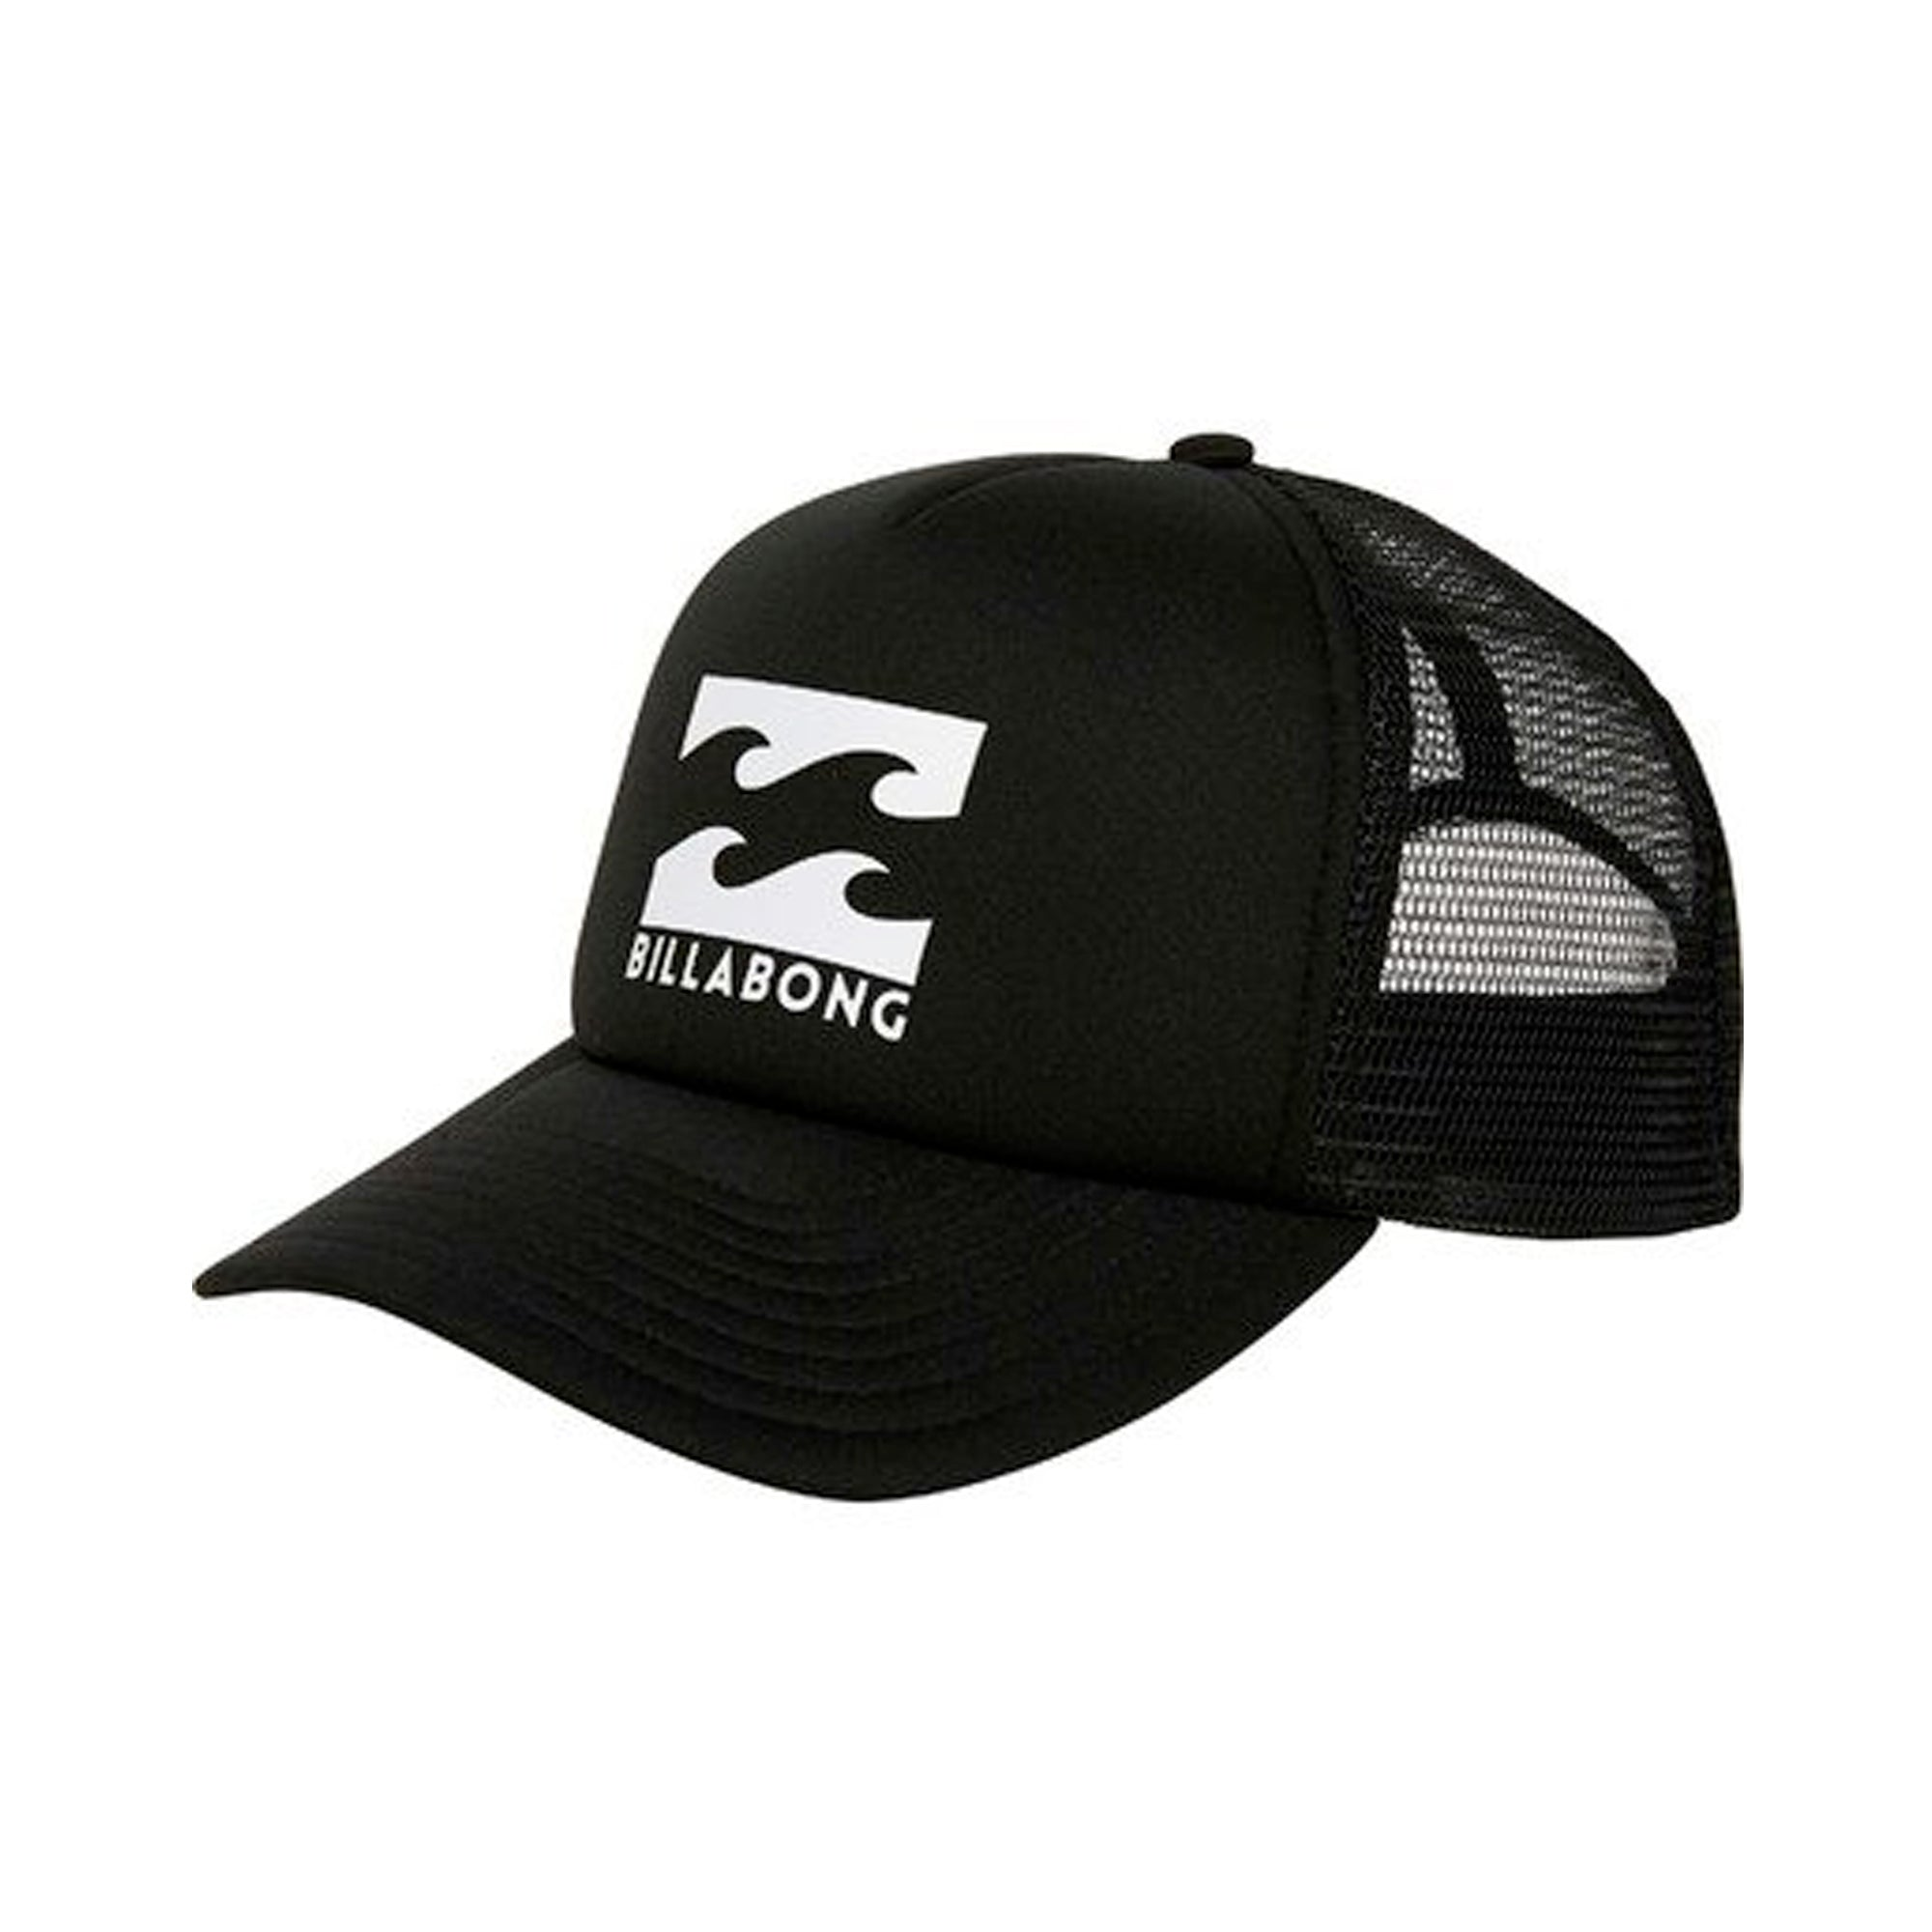 Billabong Podium Men's Trucker Hat